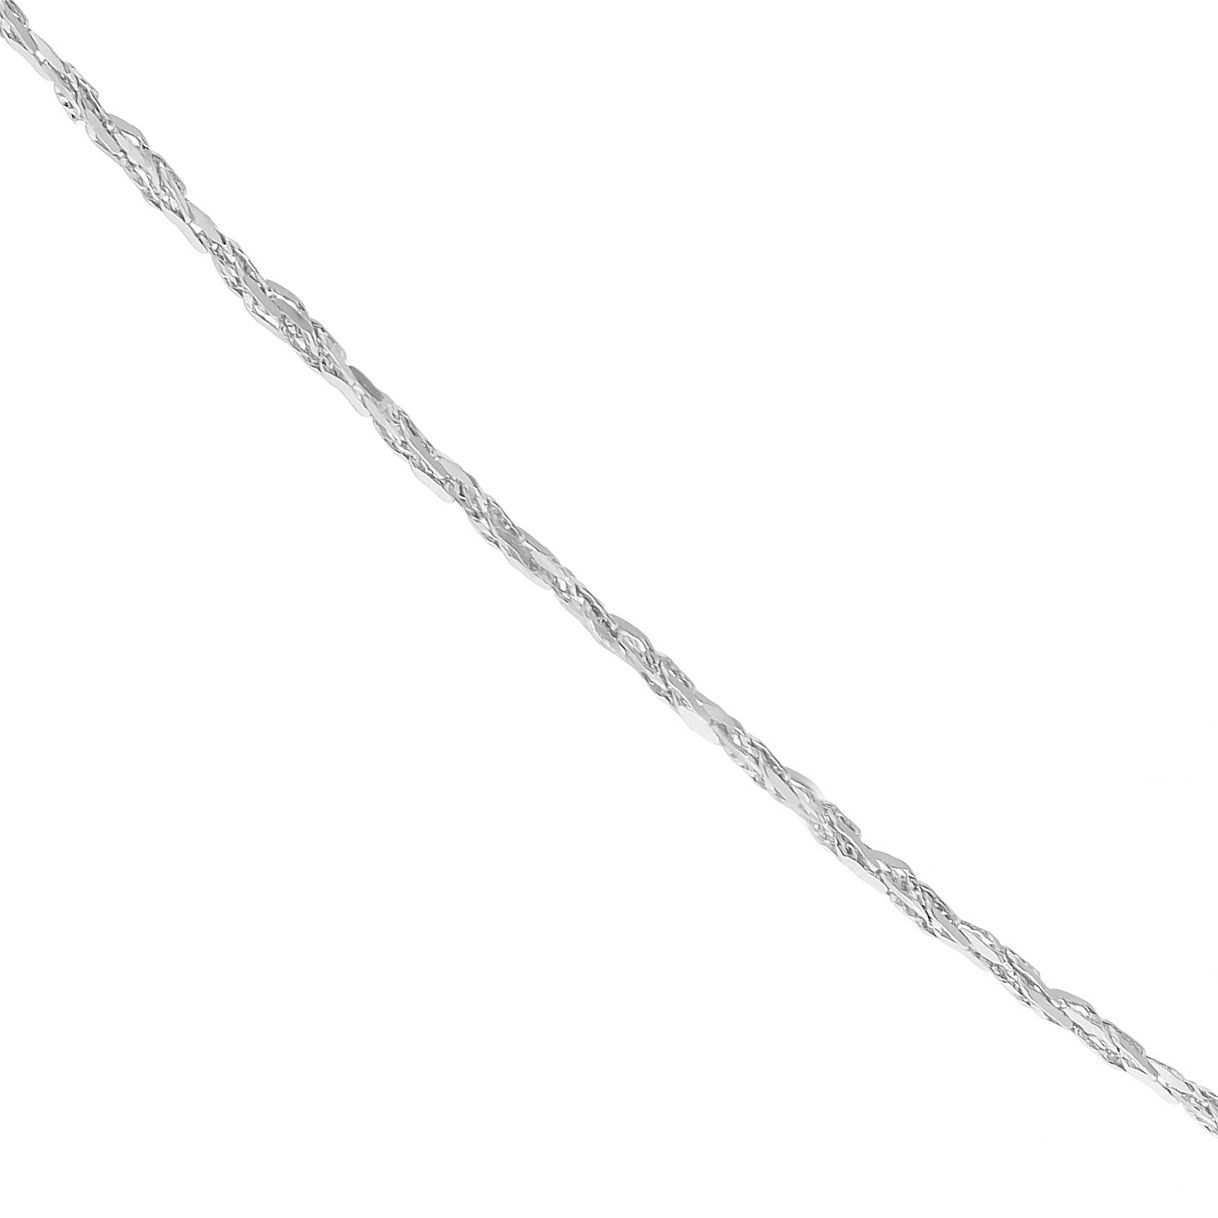 9ct White Gold Sparkle 18 inches Chain Necklace - Product number 5069092